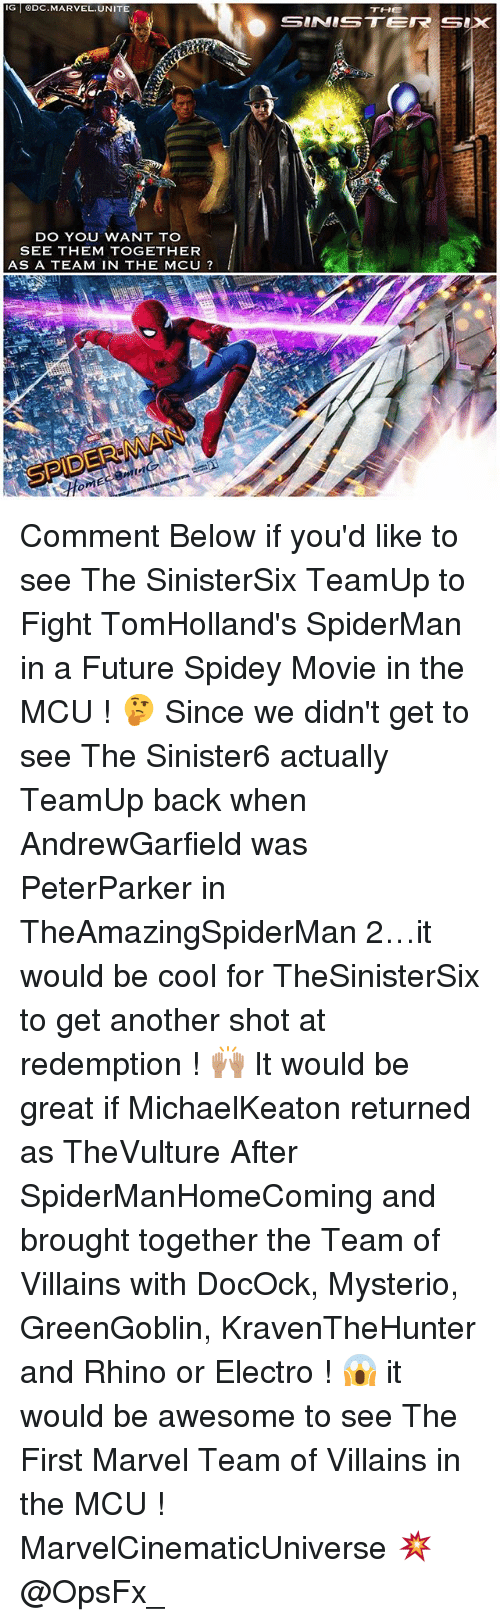 electro: IG ODC.MARVEL.UNITE  THE  DO YOU WANT TO  SEE THEM TOGETHER  AS A TEAM IN THE MCU ? Comment Below if you'd like to see The SinisterSix TeamUp to Fight TomHolland's SpiderMan in a Future Spidey Movie in the MCU ! 🤔 Since we didn't get to see The Sinister6 actually TeamUp back when AndrewGarfield was PeterParker in TheAmazingSpiderMan 2…it would be cool for TheSinisterSix to get another shot at redemption ! 🙌🏽 It would be great if MichaelKeaton returned as TheVulture After SpiderManHomeComing and brought together the Team of Villains with DocOck, Mysterio, GreenGoblin, KravenTheHunter and Rhino or Electro ! 😱 it would be awesome to see The First Marvel Team of Villains in the MCU ! MarvelCinematicUniverse 💥 @OpsFx_